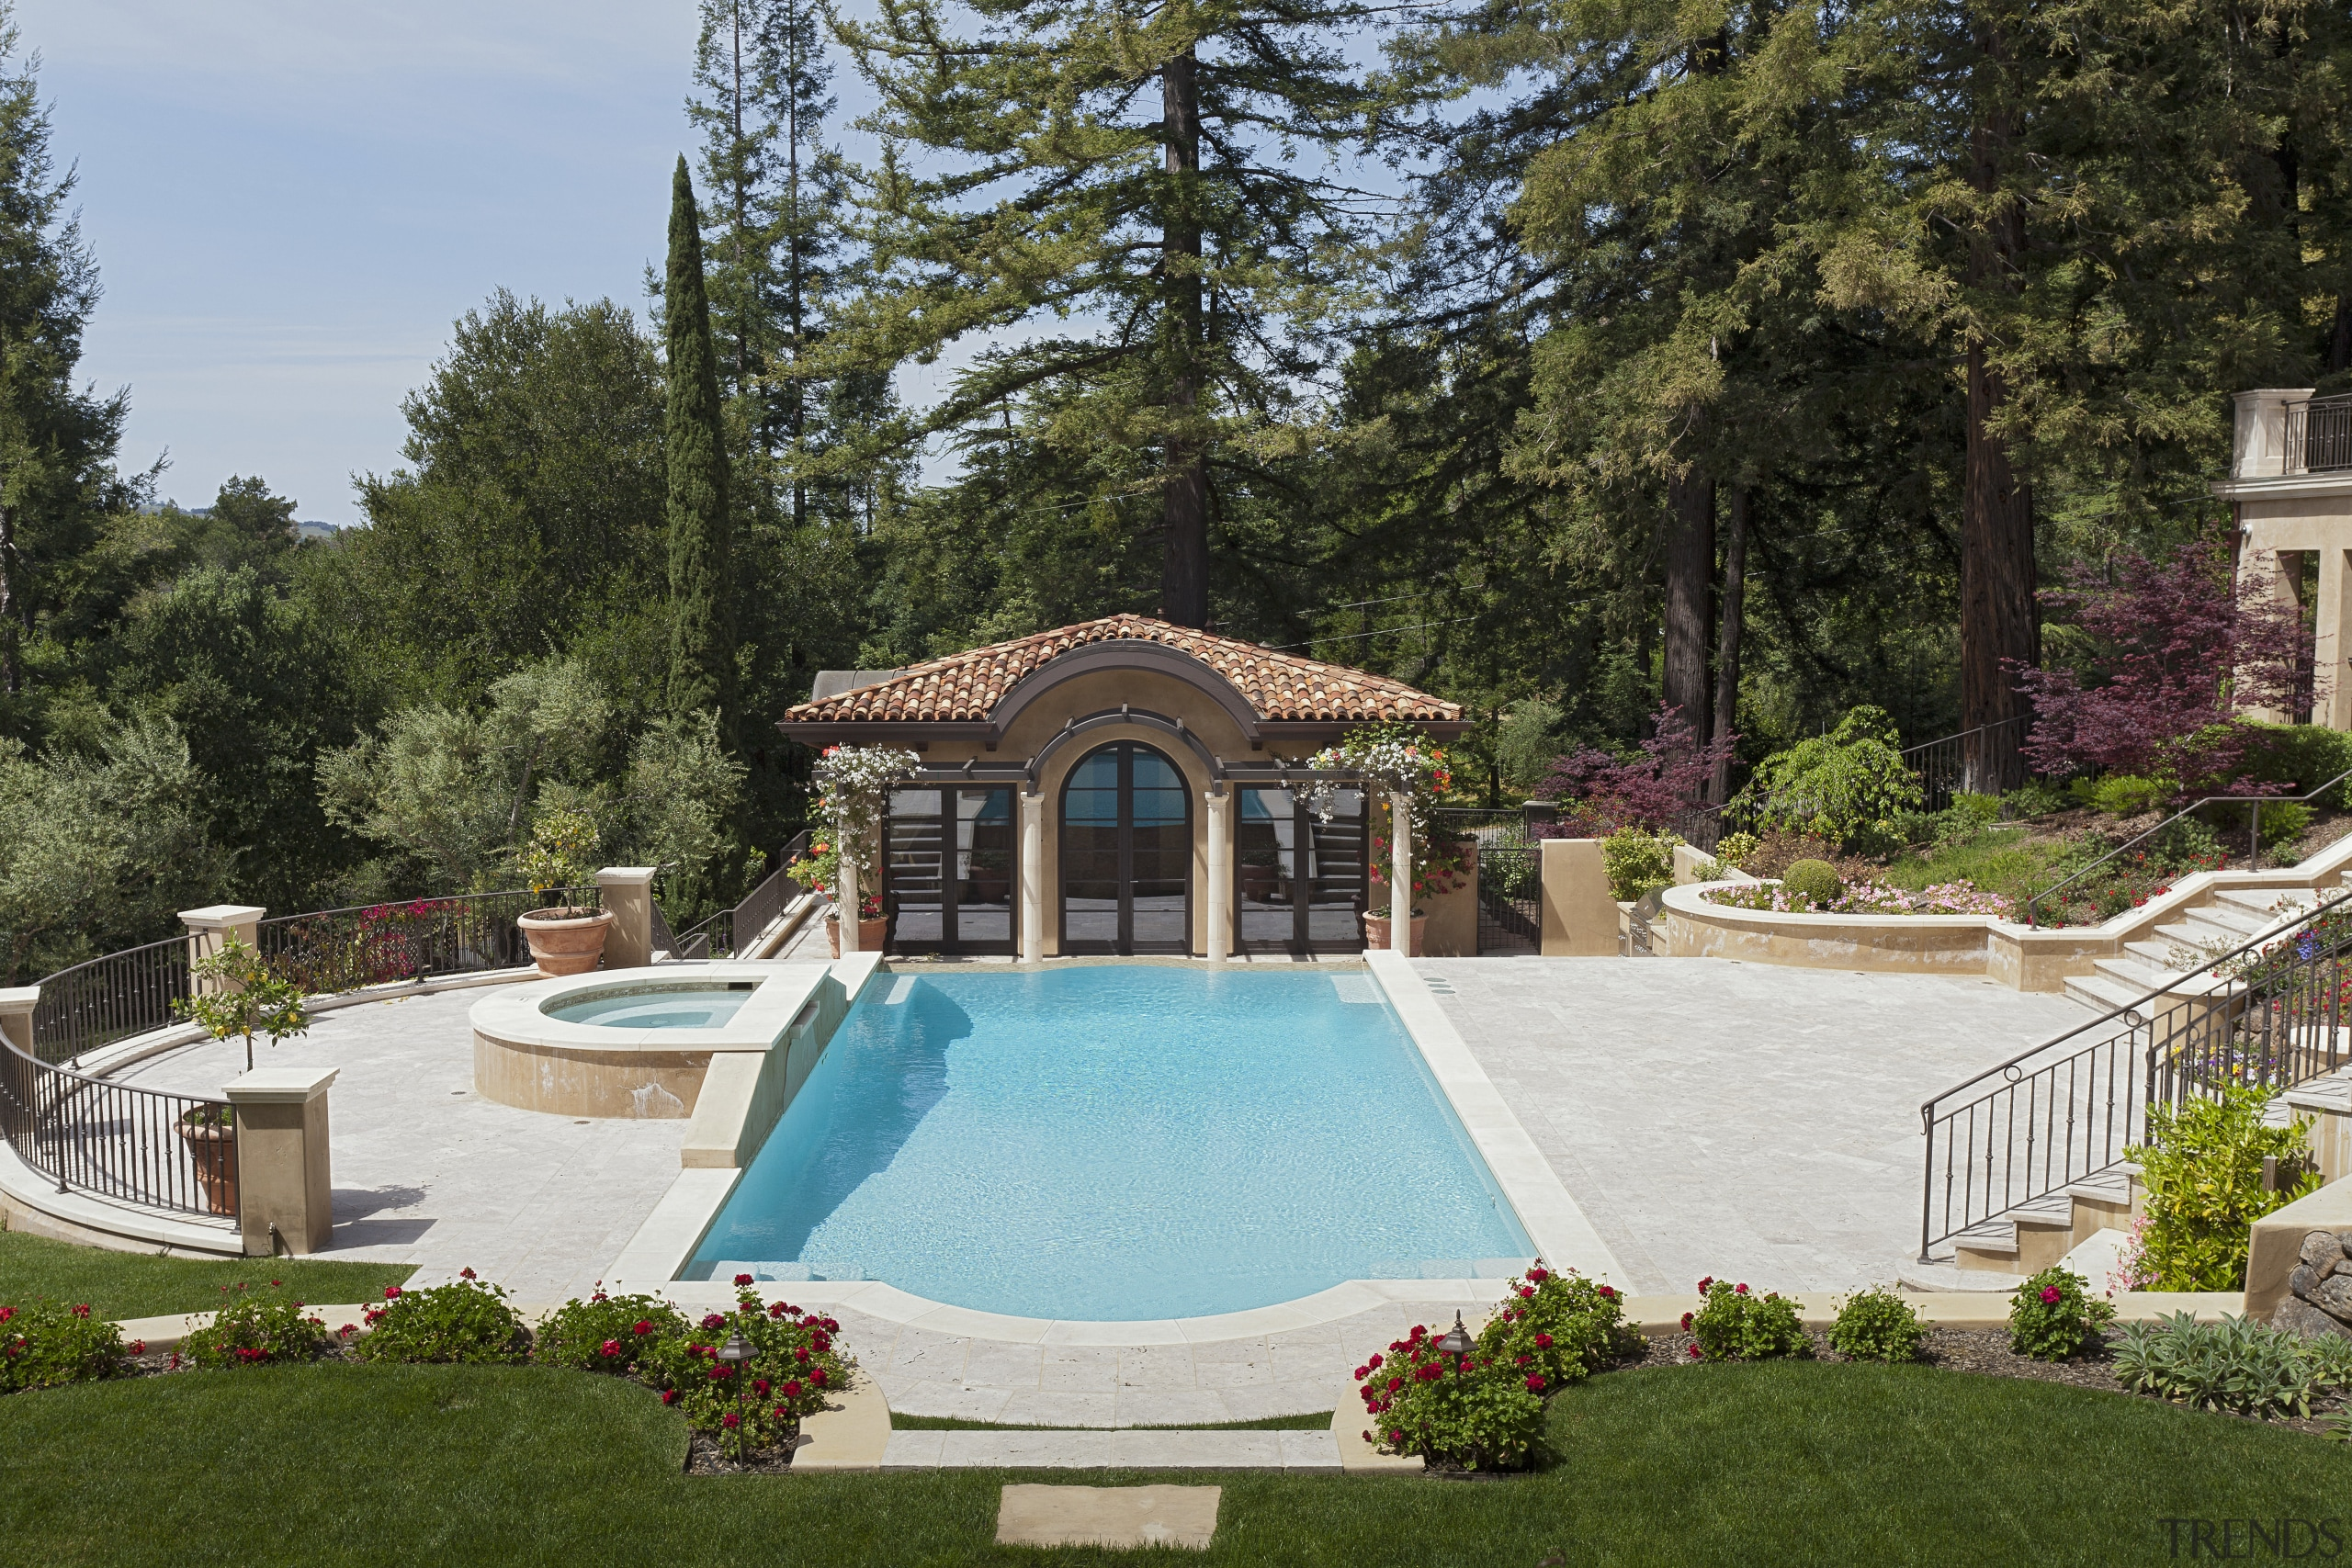 Swimming pool and terra cotta-tiled pool house in backyard, estate, home, house, landscaping, leisure, mansion, outdoor structure, property, real estate, swimming pool, villa, yard, brown